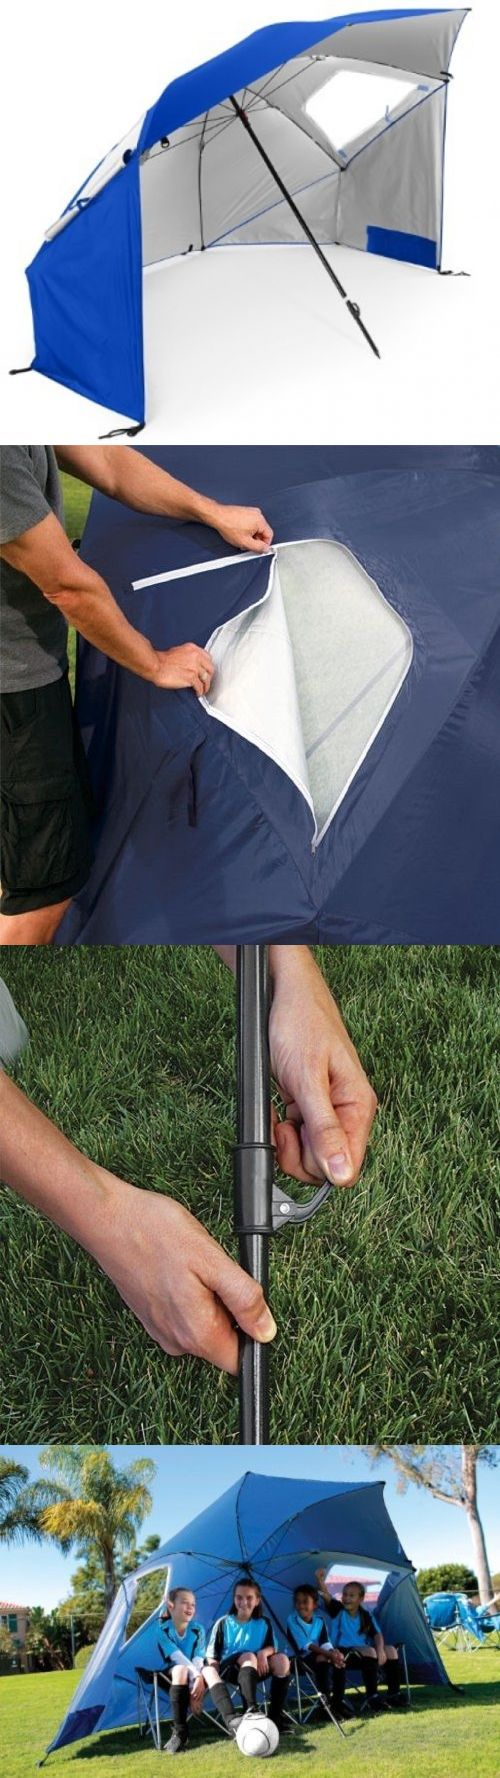 Canopies and Shelters 179011: Super-Brella Beach Umbrella Rain Shelter Sun Tent Large Canopy Sideway Wind Blue BUY IT NOW ONLY: $50.39